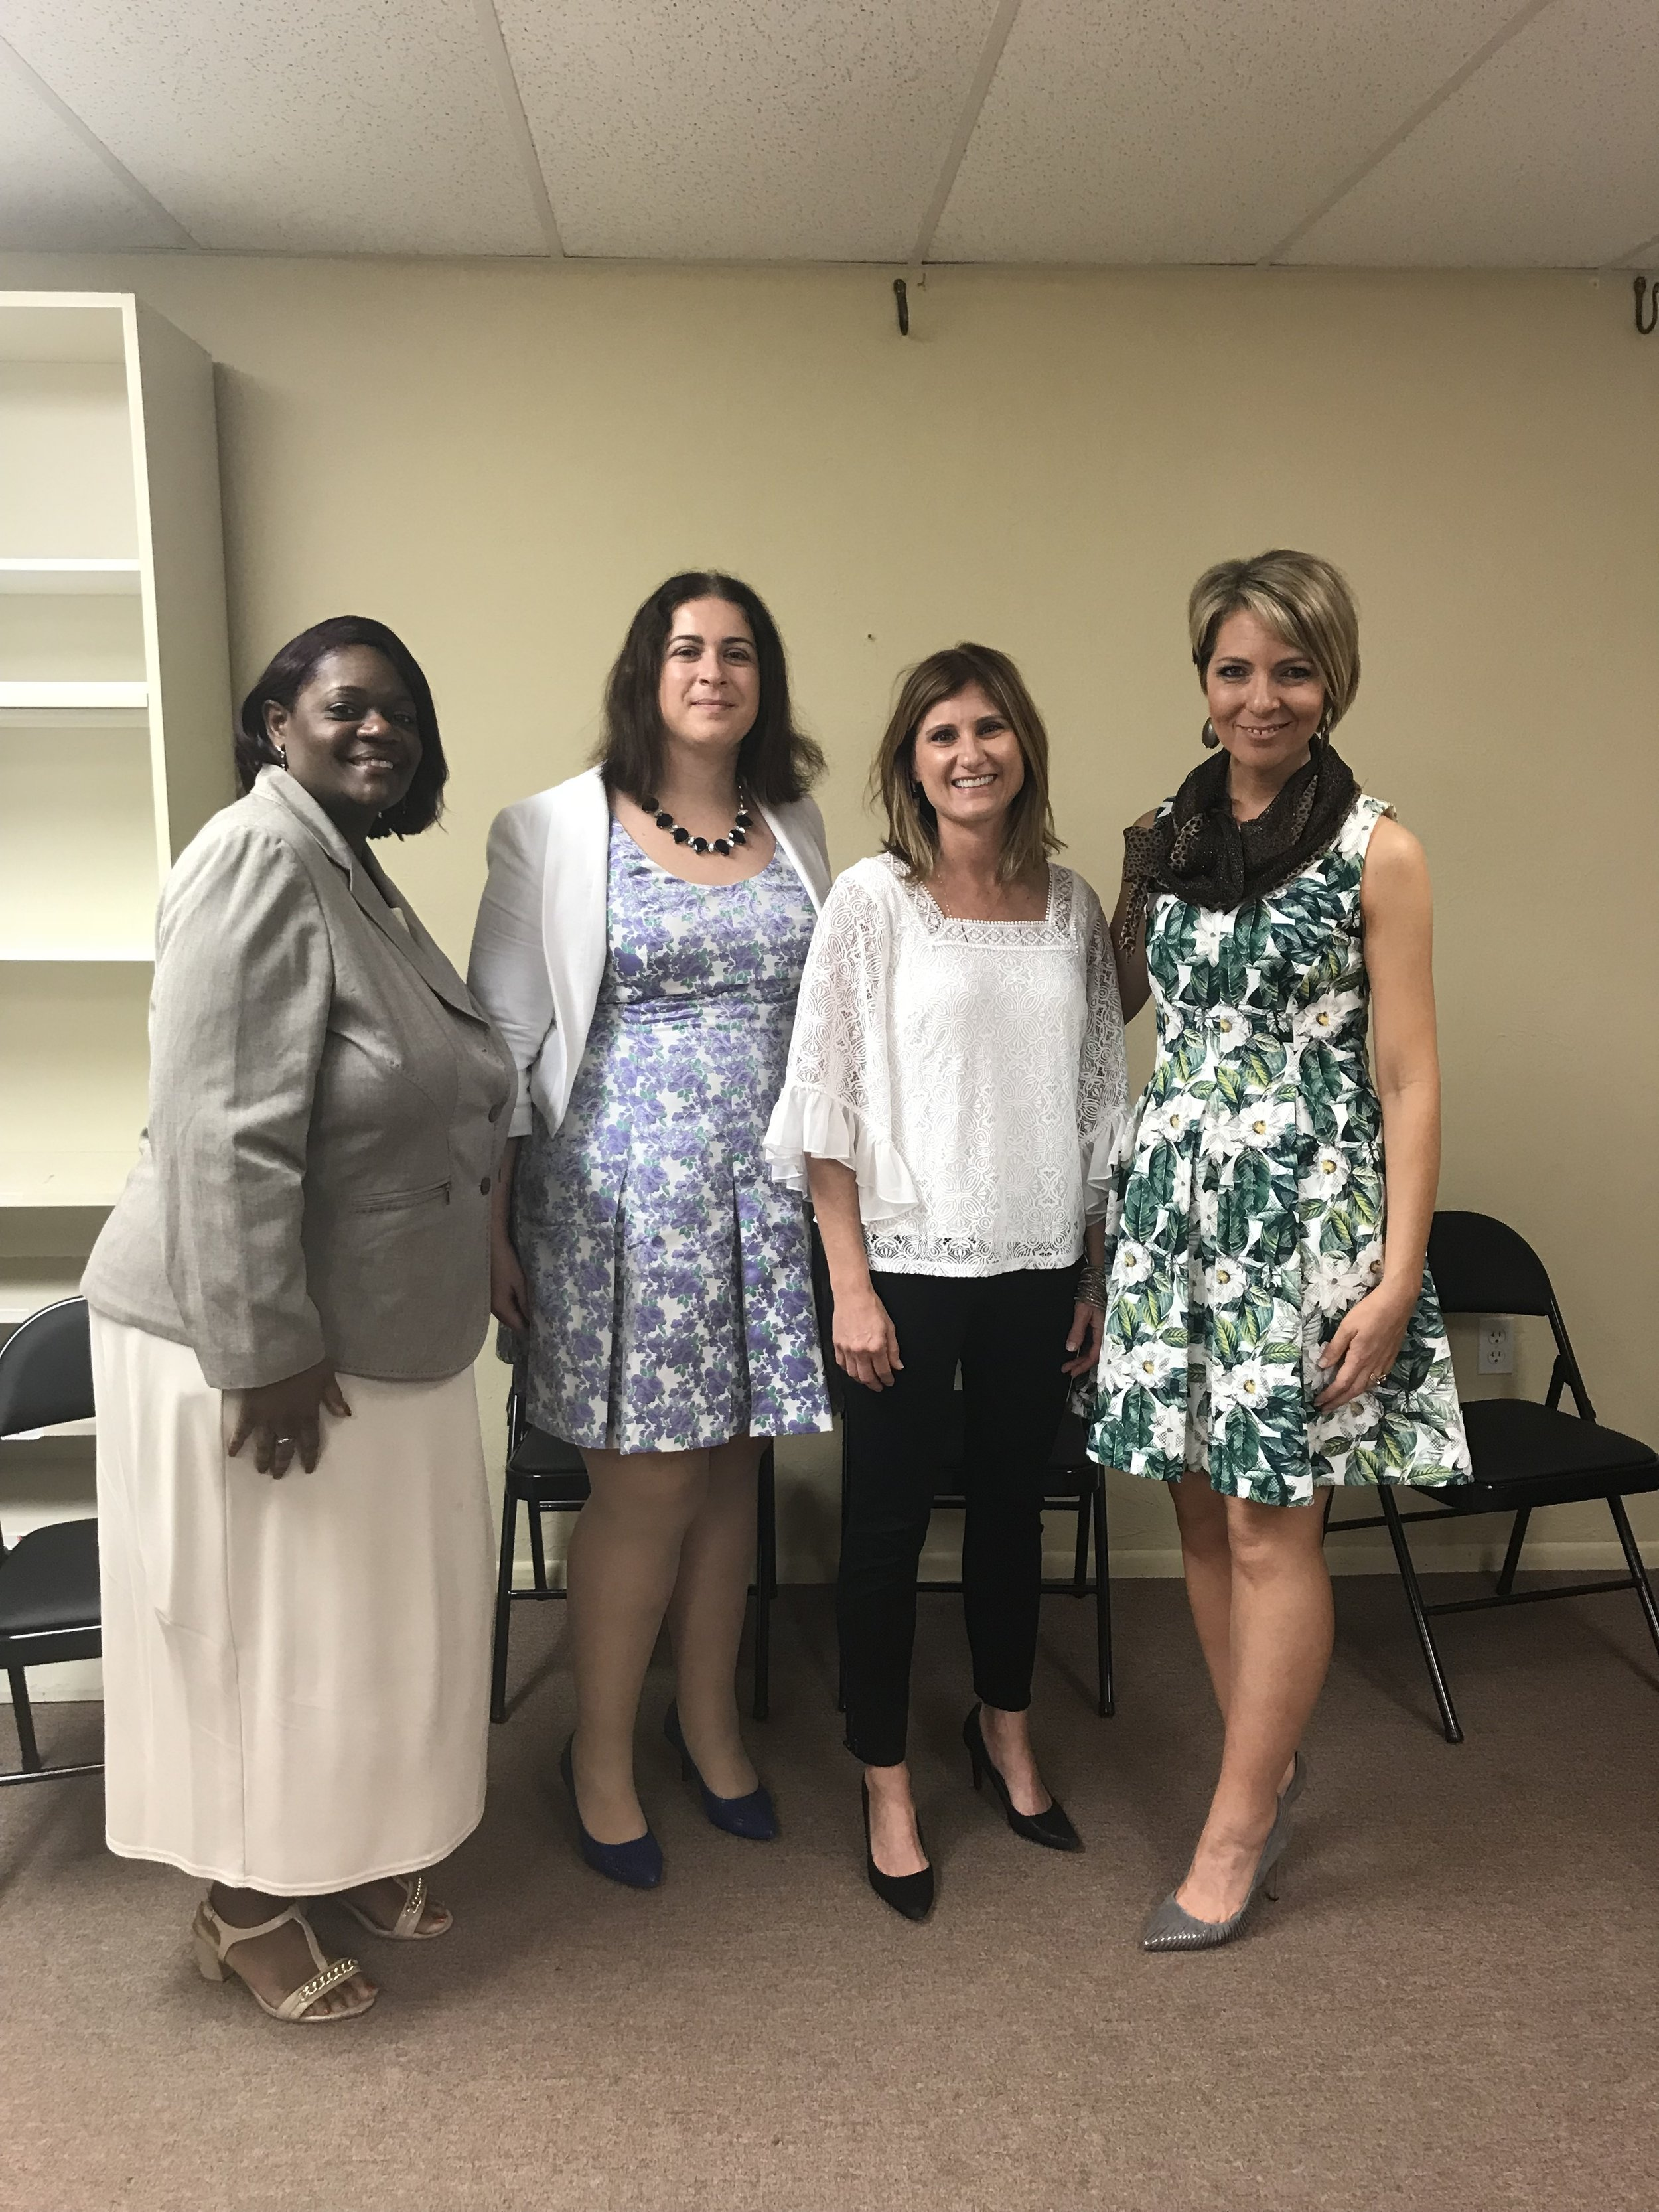 Barbara Melvin, Cheryl Reynolds, Angie Rogaliner and Erica Castner at the Dress for Success SW Florida WETES Graduation in Fort Myers - April 18, 2018.